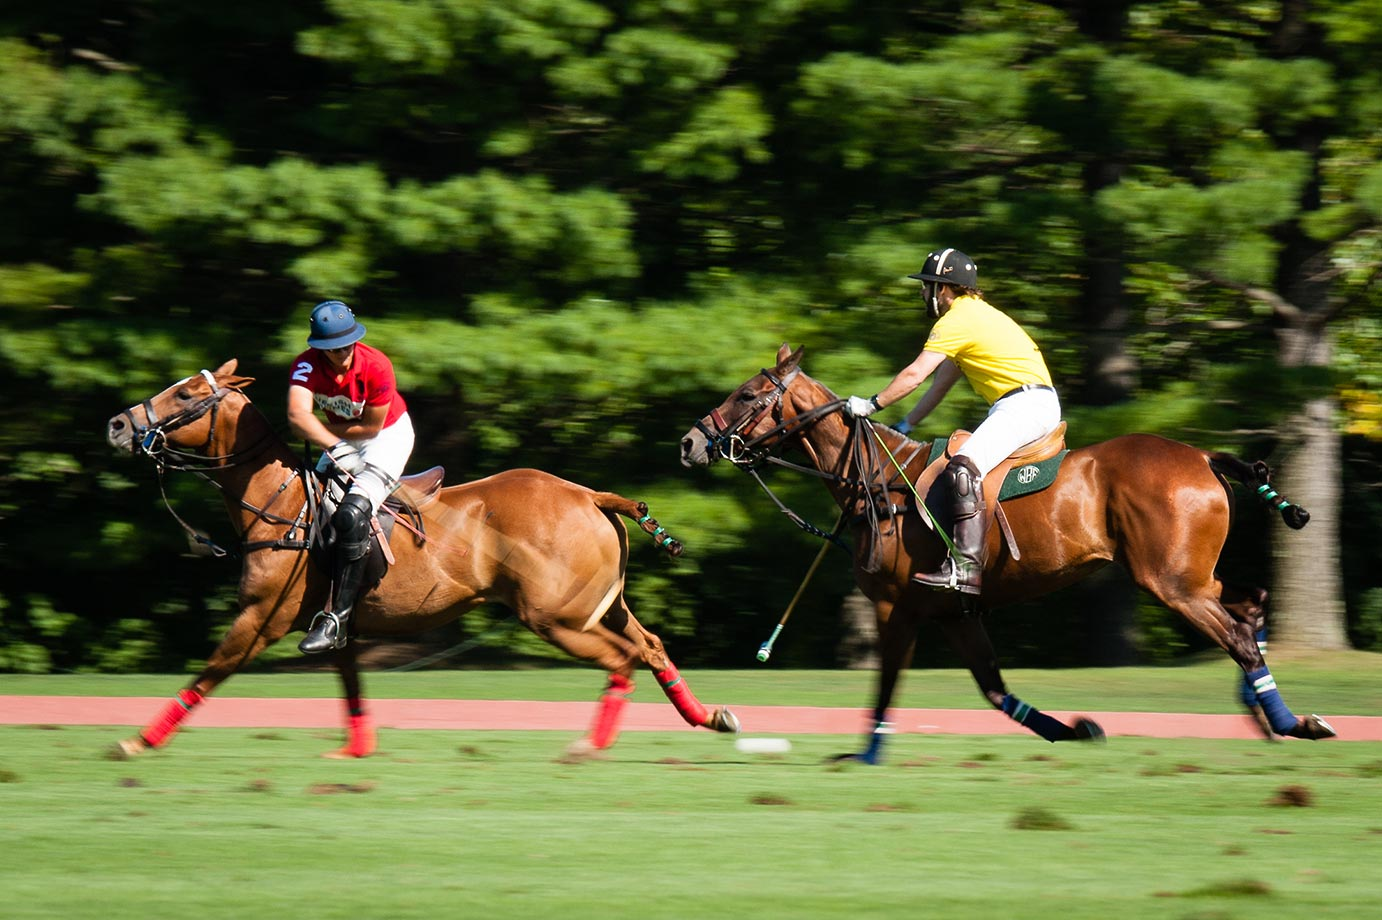 Turkish AIrlines' Joaquin Panelo takes a backshot during the match against McLaren. Polo is a fast game with ponies going as fast as 30 miles per hour.